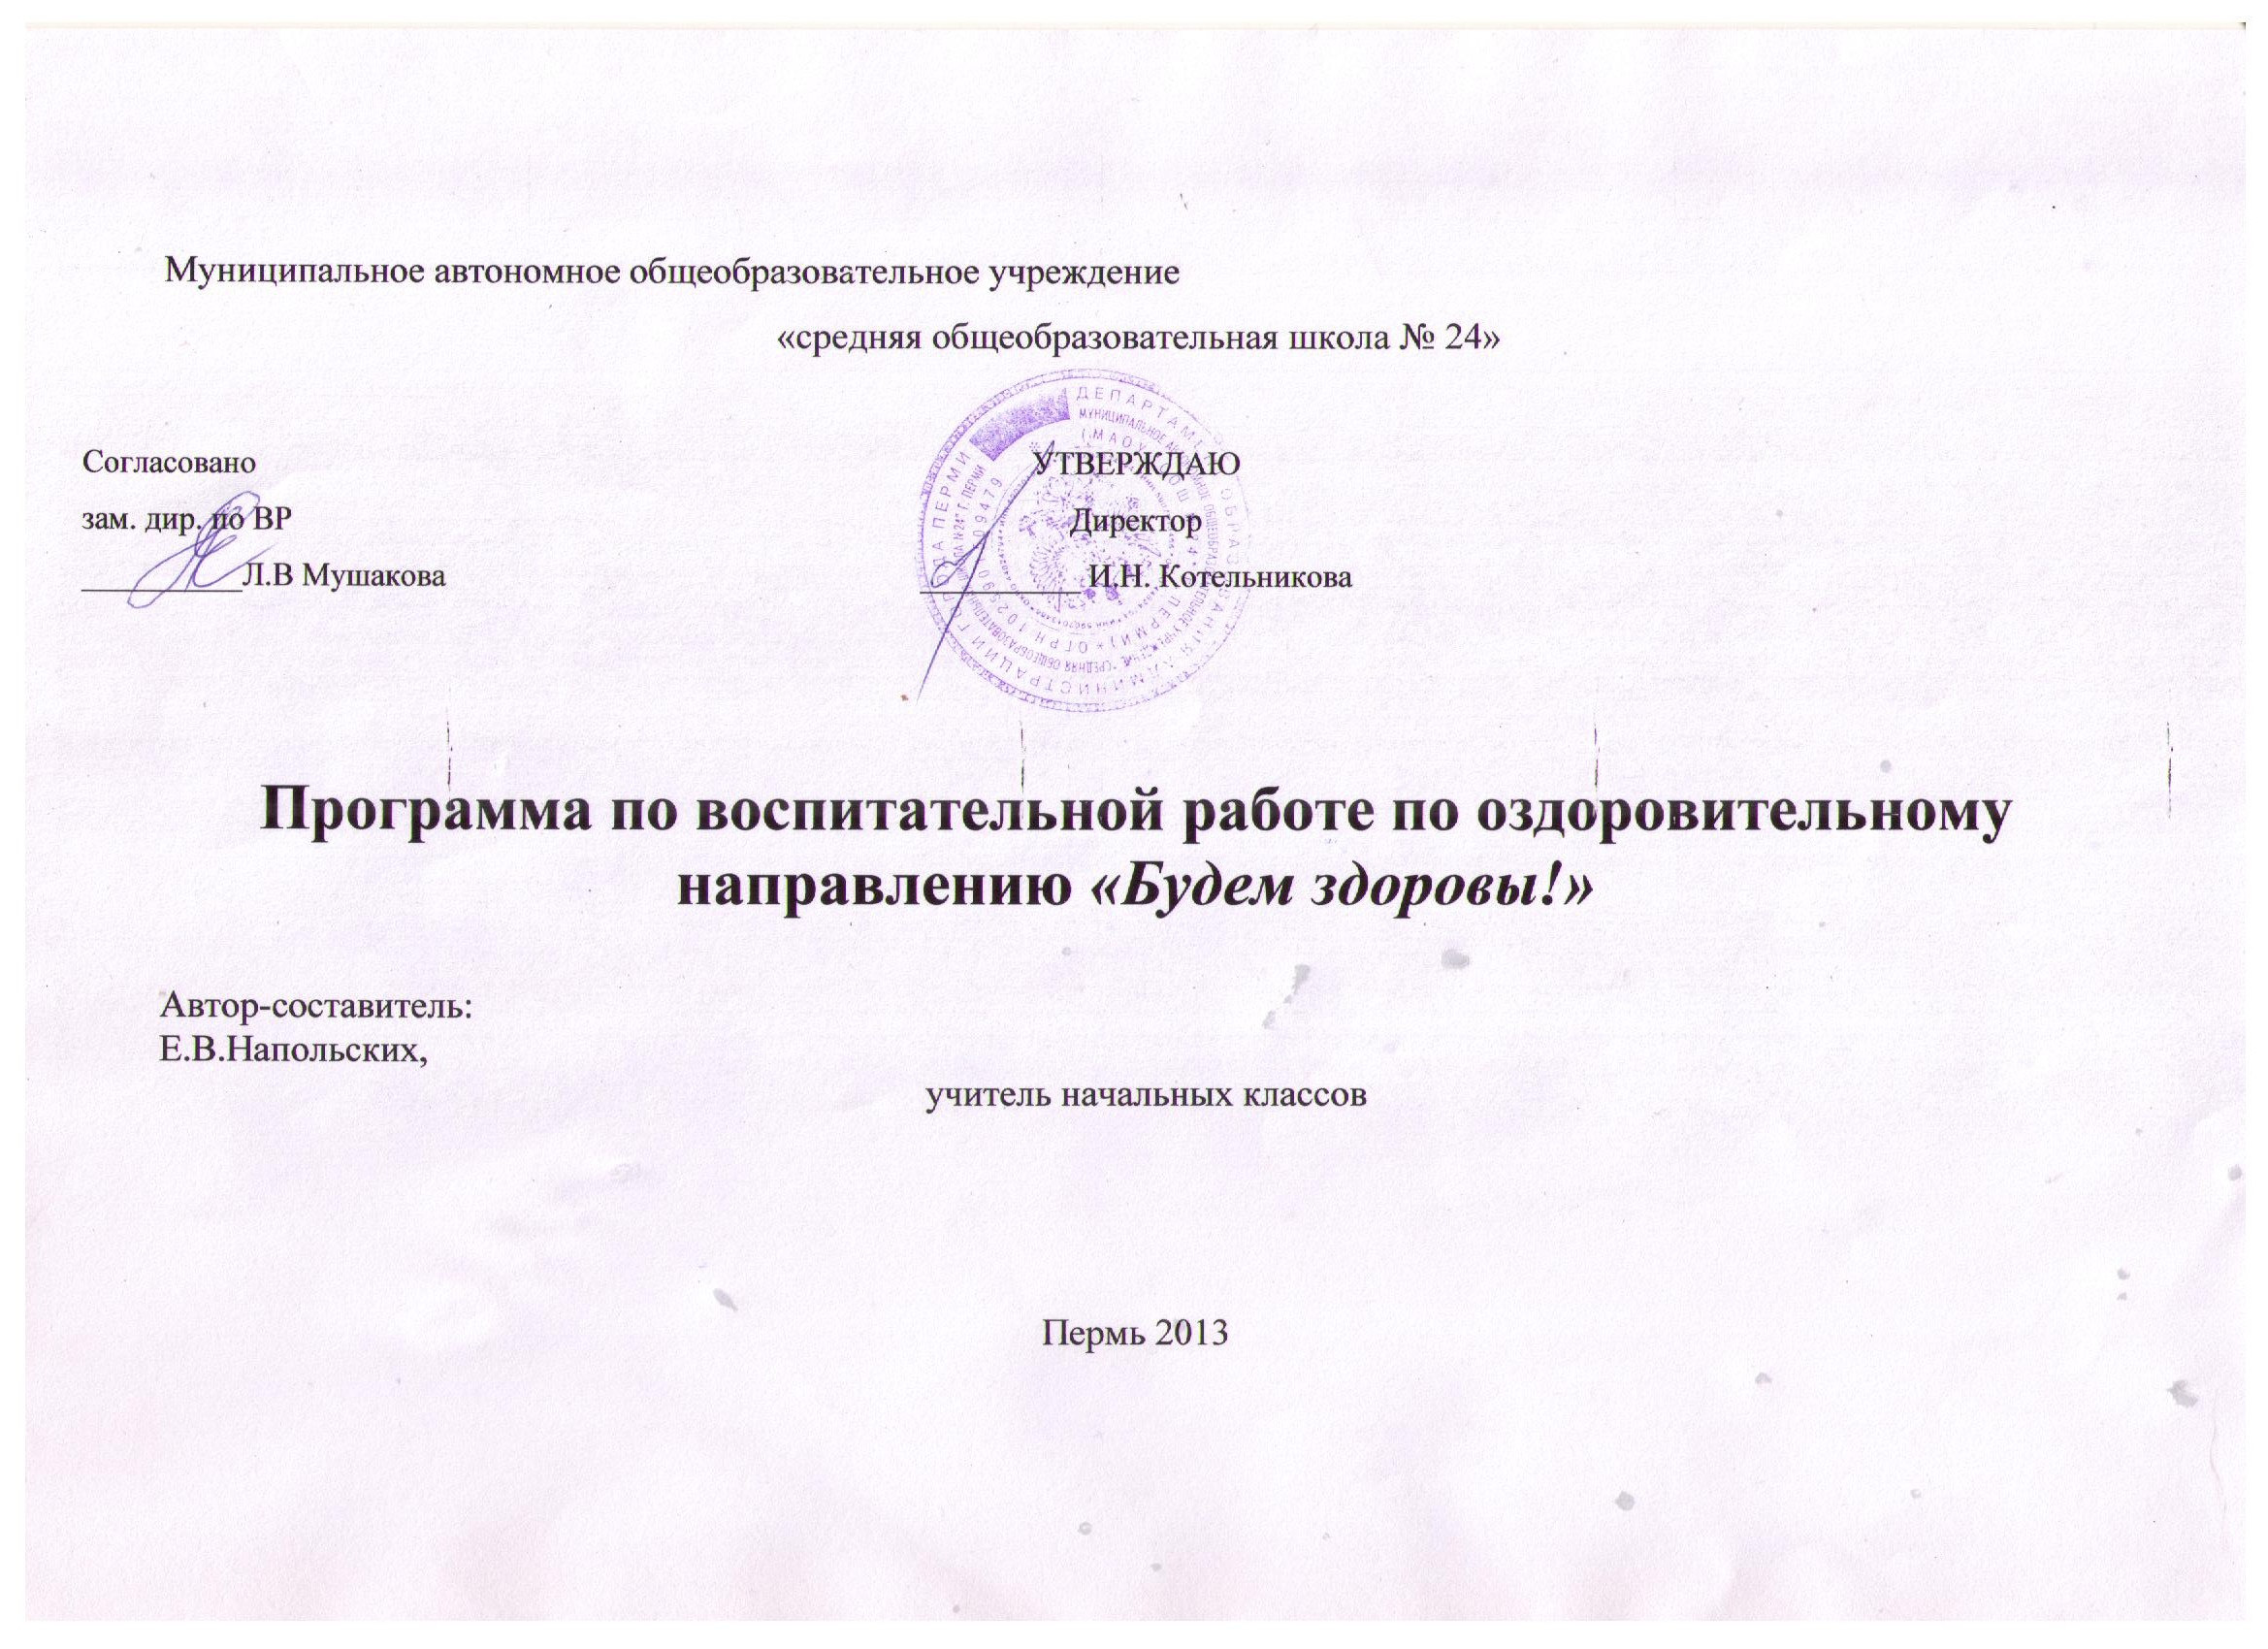 C:\Users\я\Documents\Scanned Documents\прогр будьздоров.jpeg